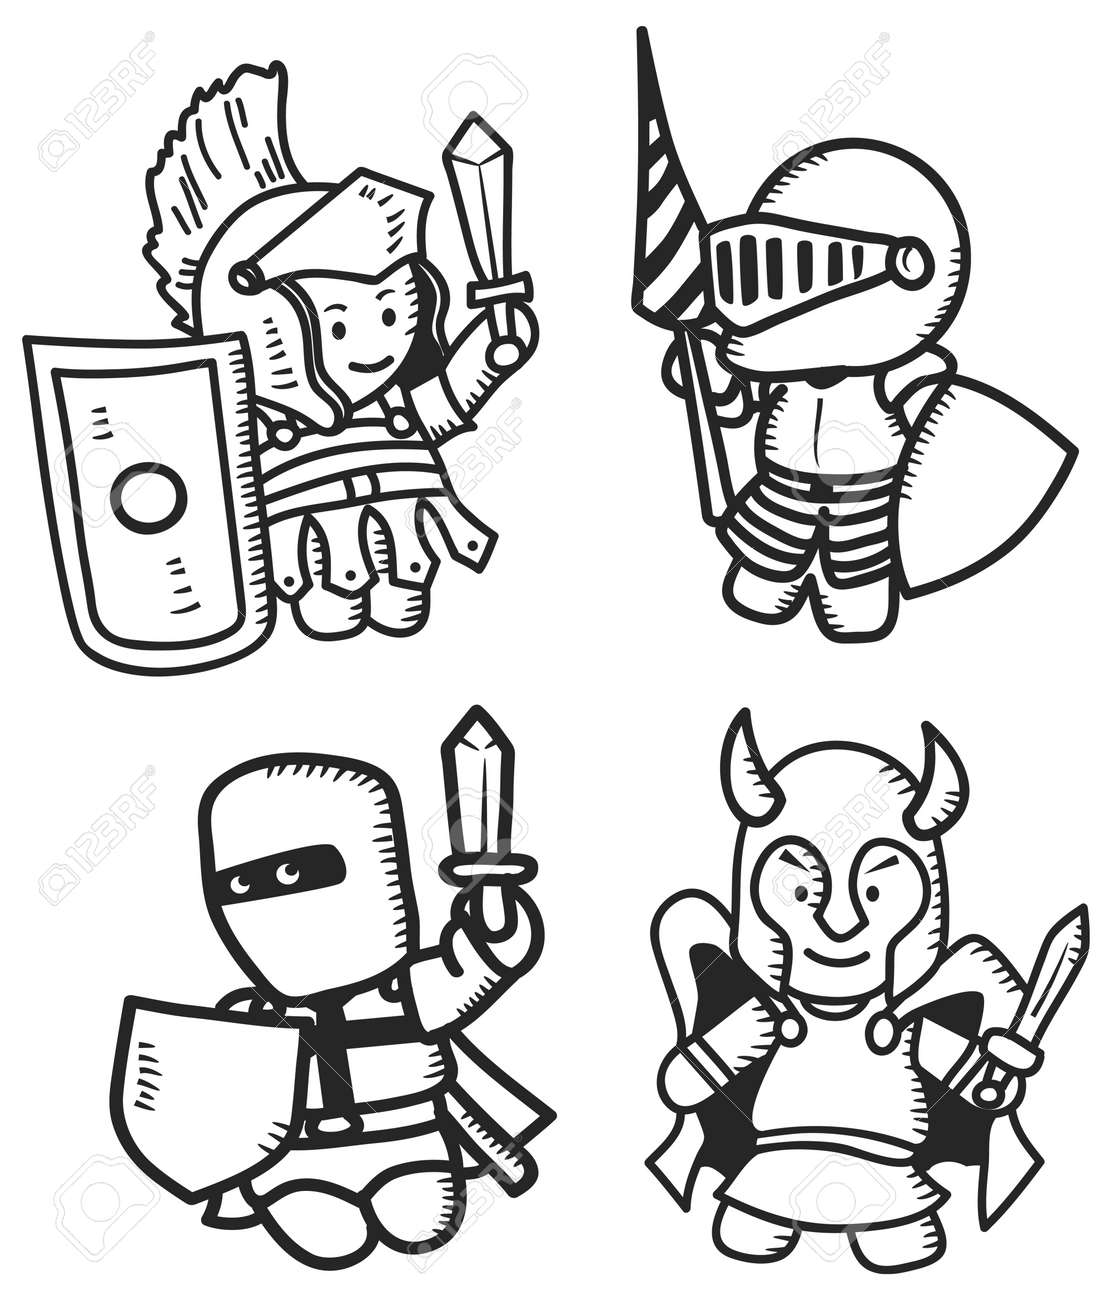 set of ancient warrior royalty free cliparts vectors and stock